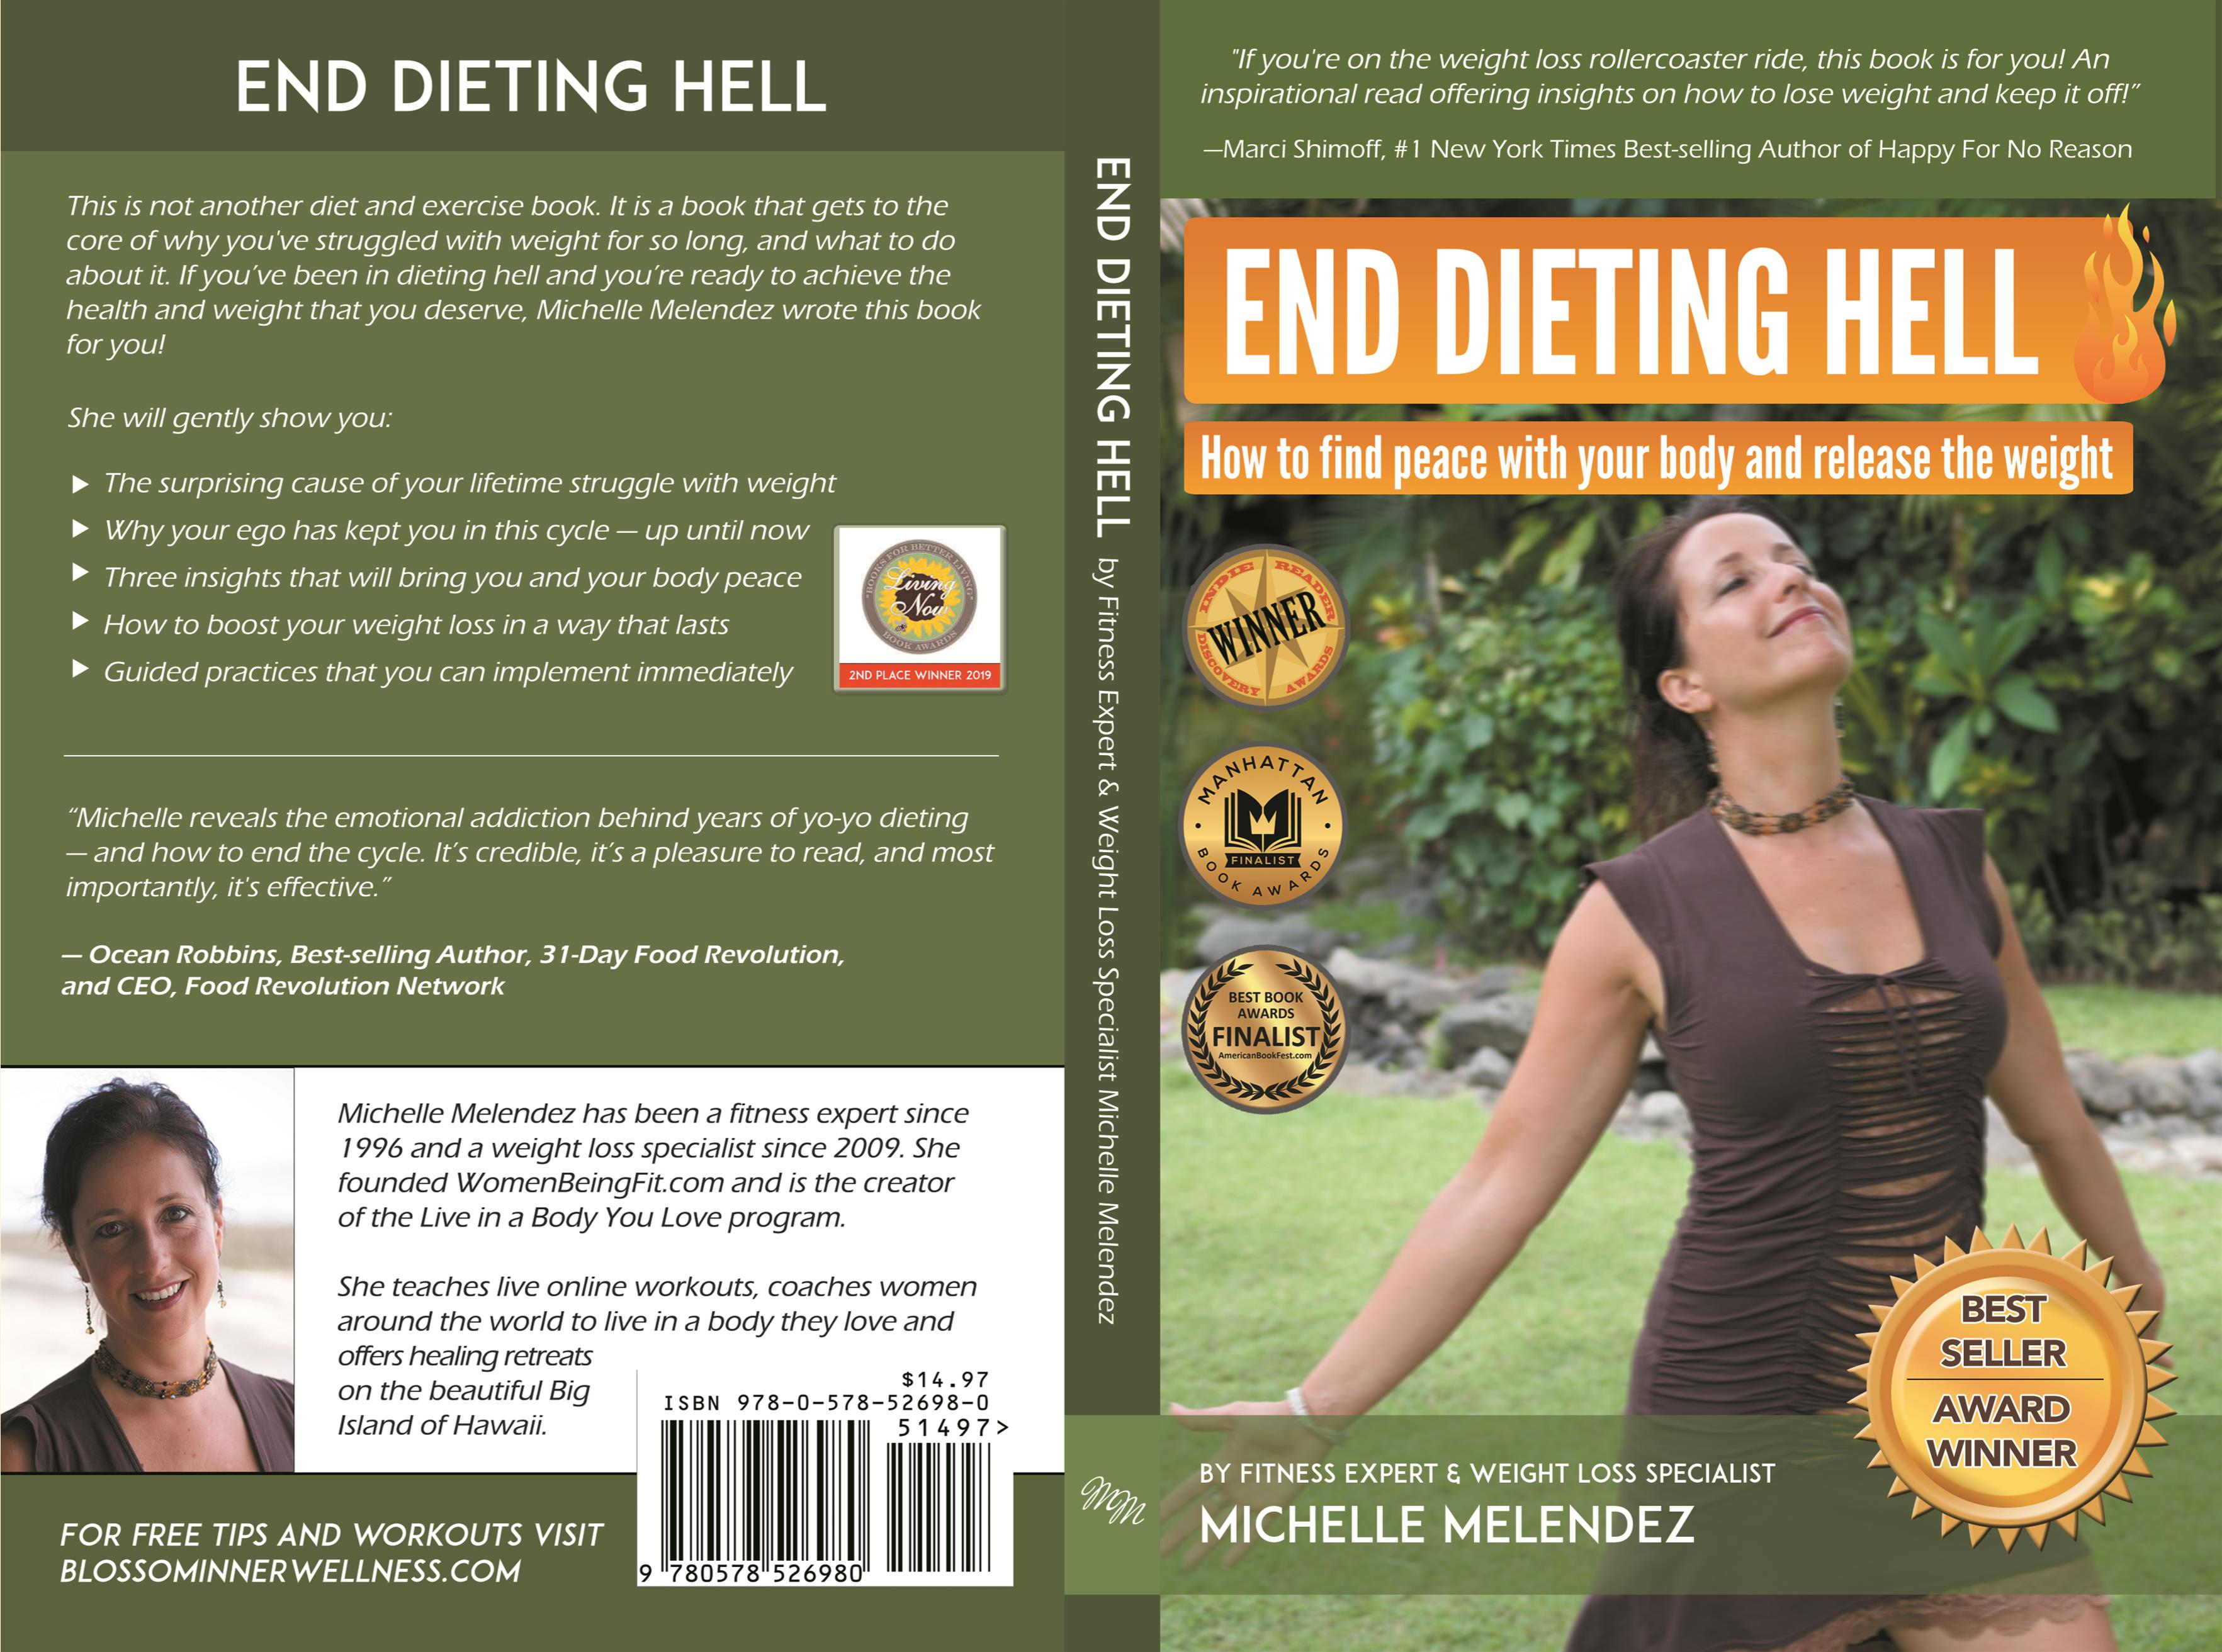 End Dieting Hell cover image